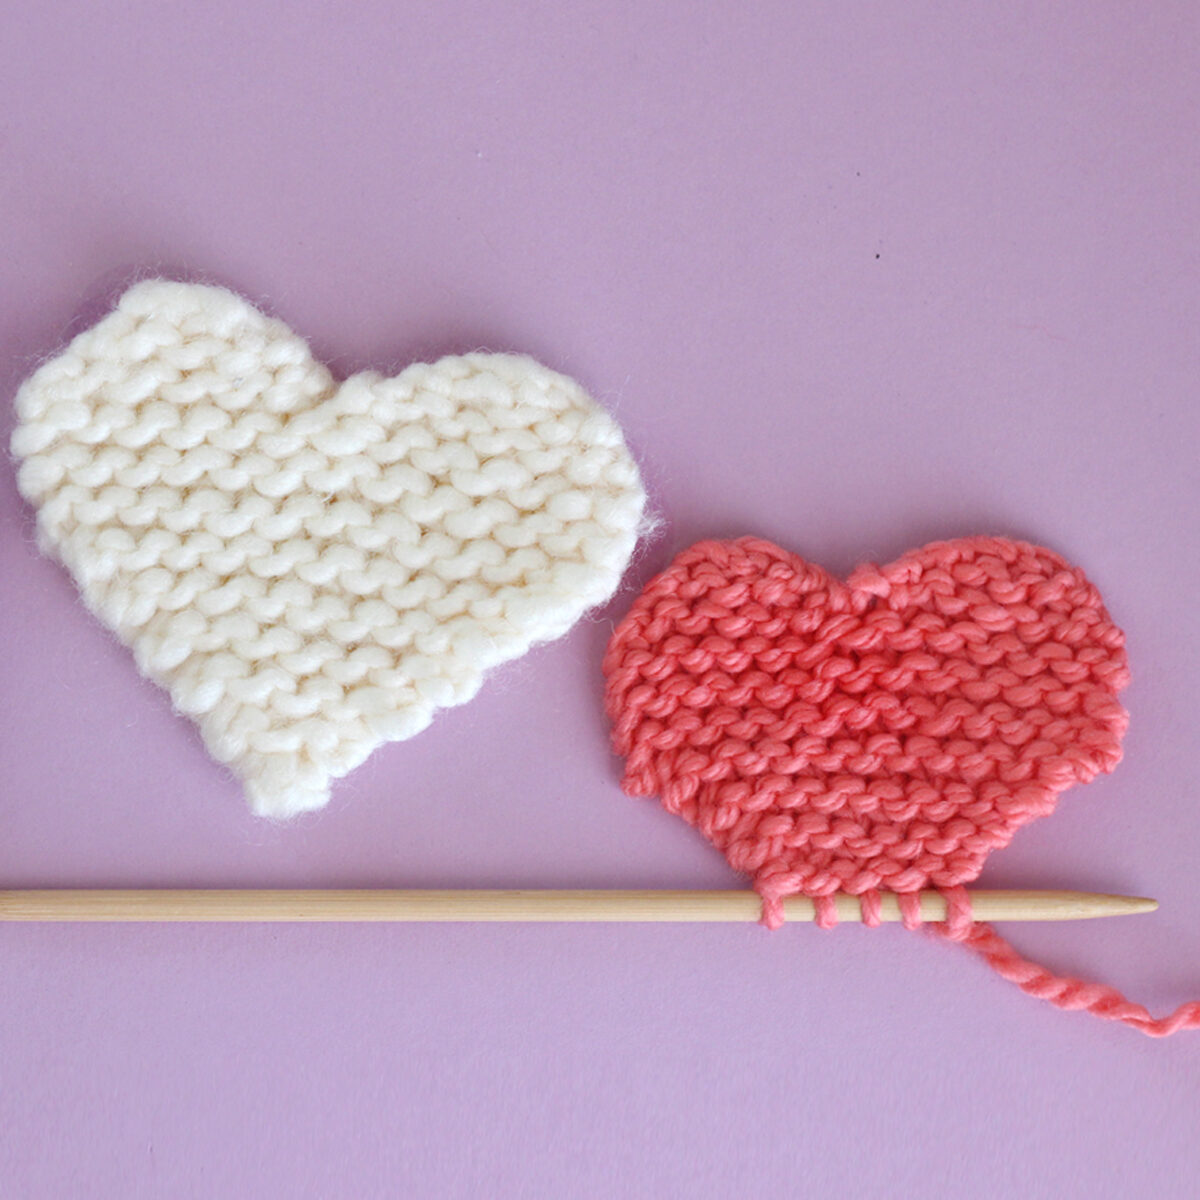 knitted heart shapes in garter stitch pattern